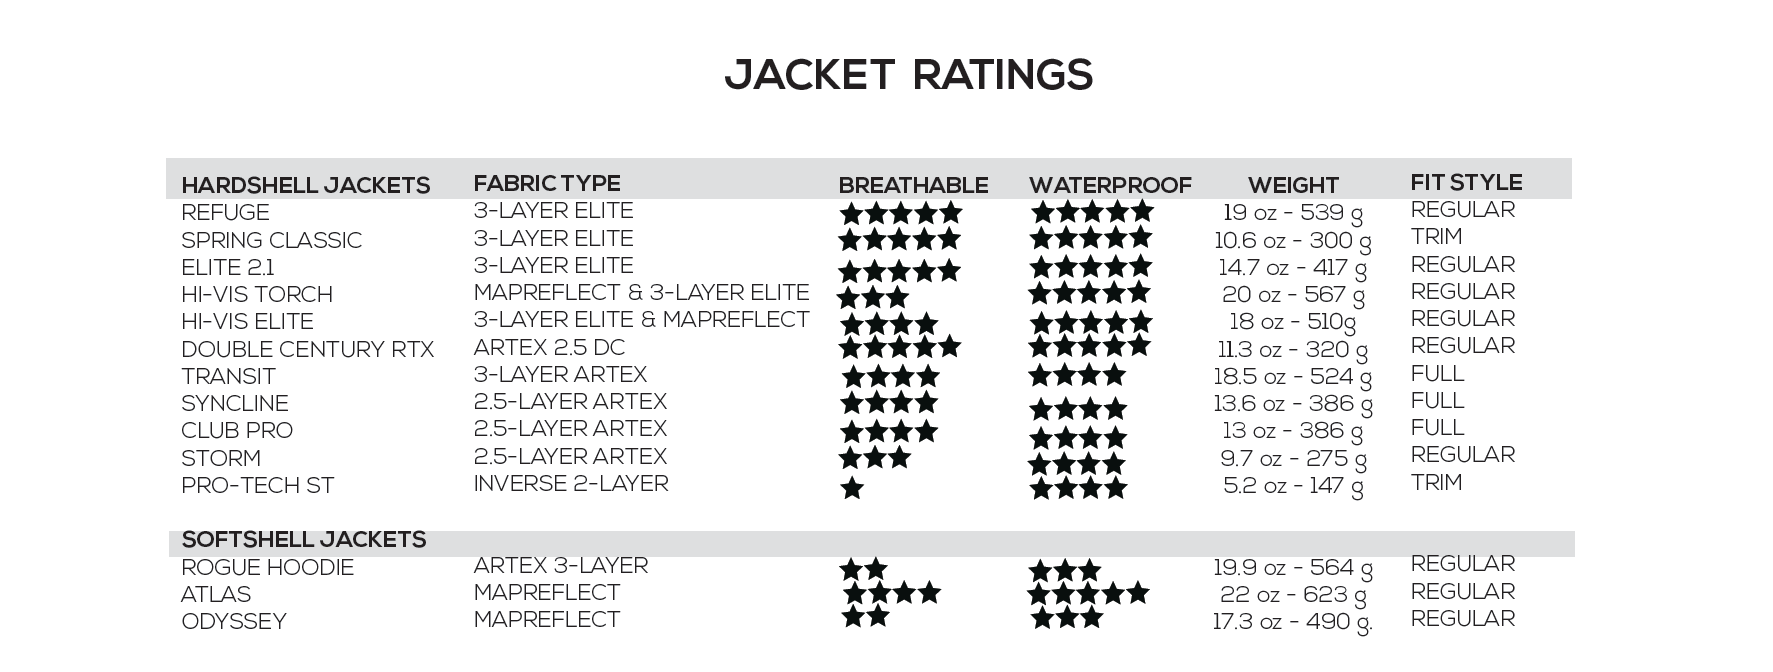 Rain Jacket waterproof breathable ratings chart showers pass